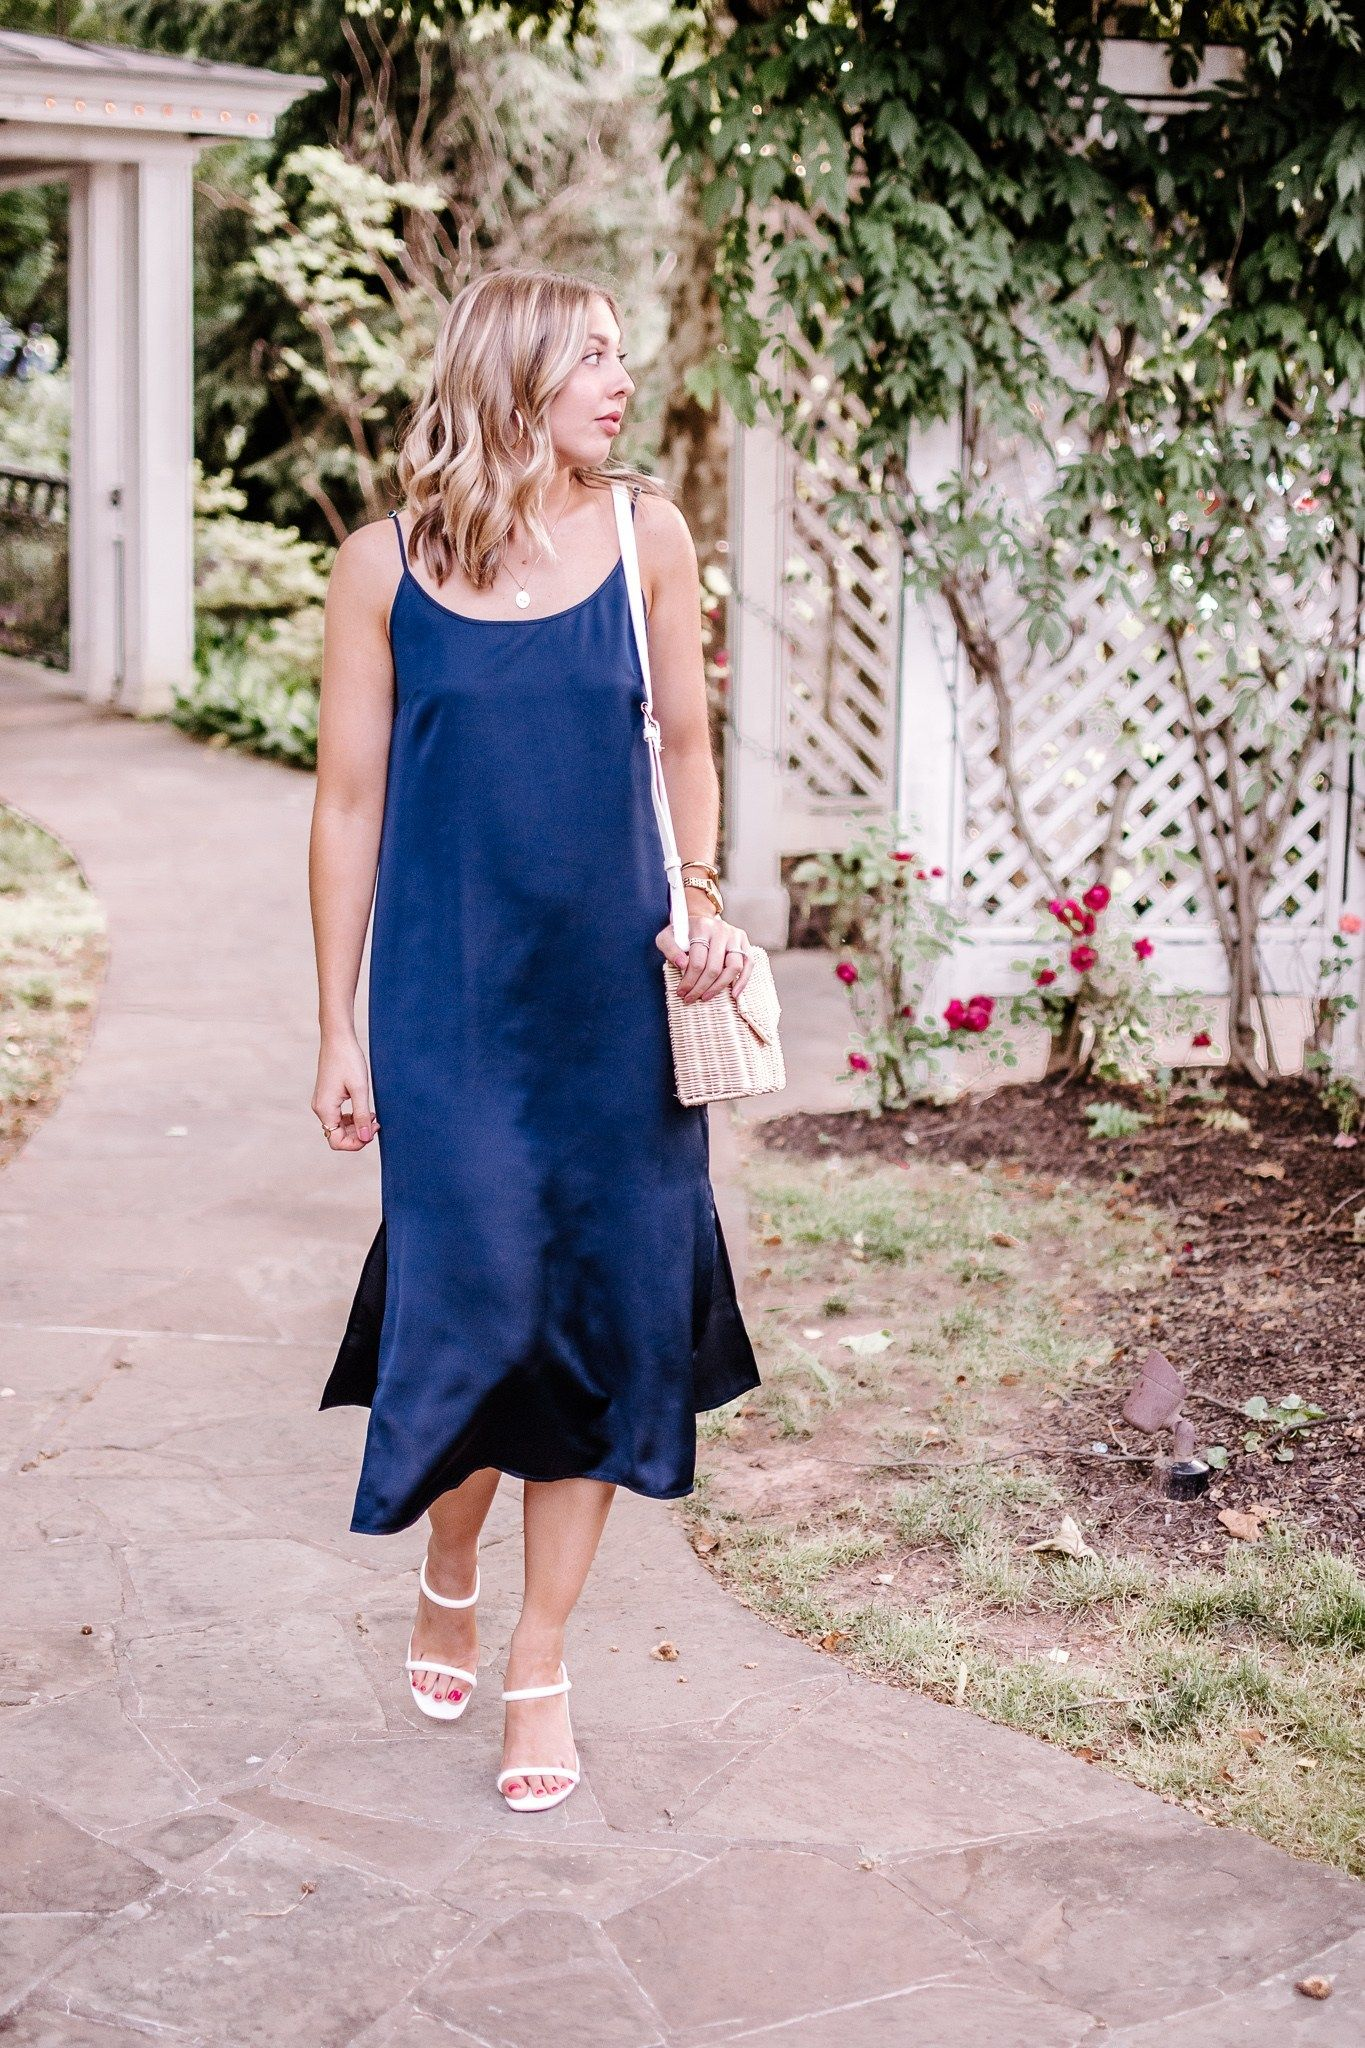 Navy Slip Dress How To Style A Slip Dress For Summer Slip Dress Outfit Summer Fashion Outfits Casual Slip Dress [ 2048 x 1365 Pixel ]